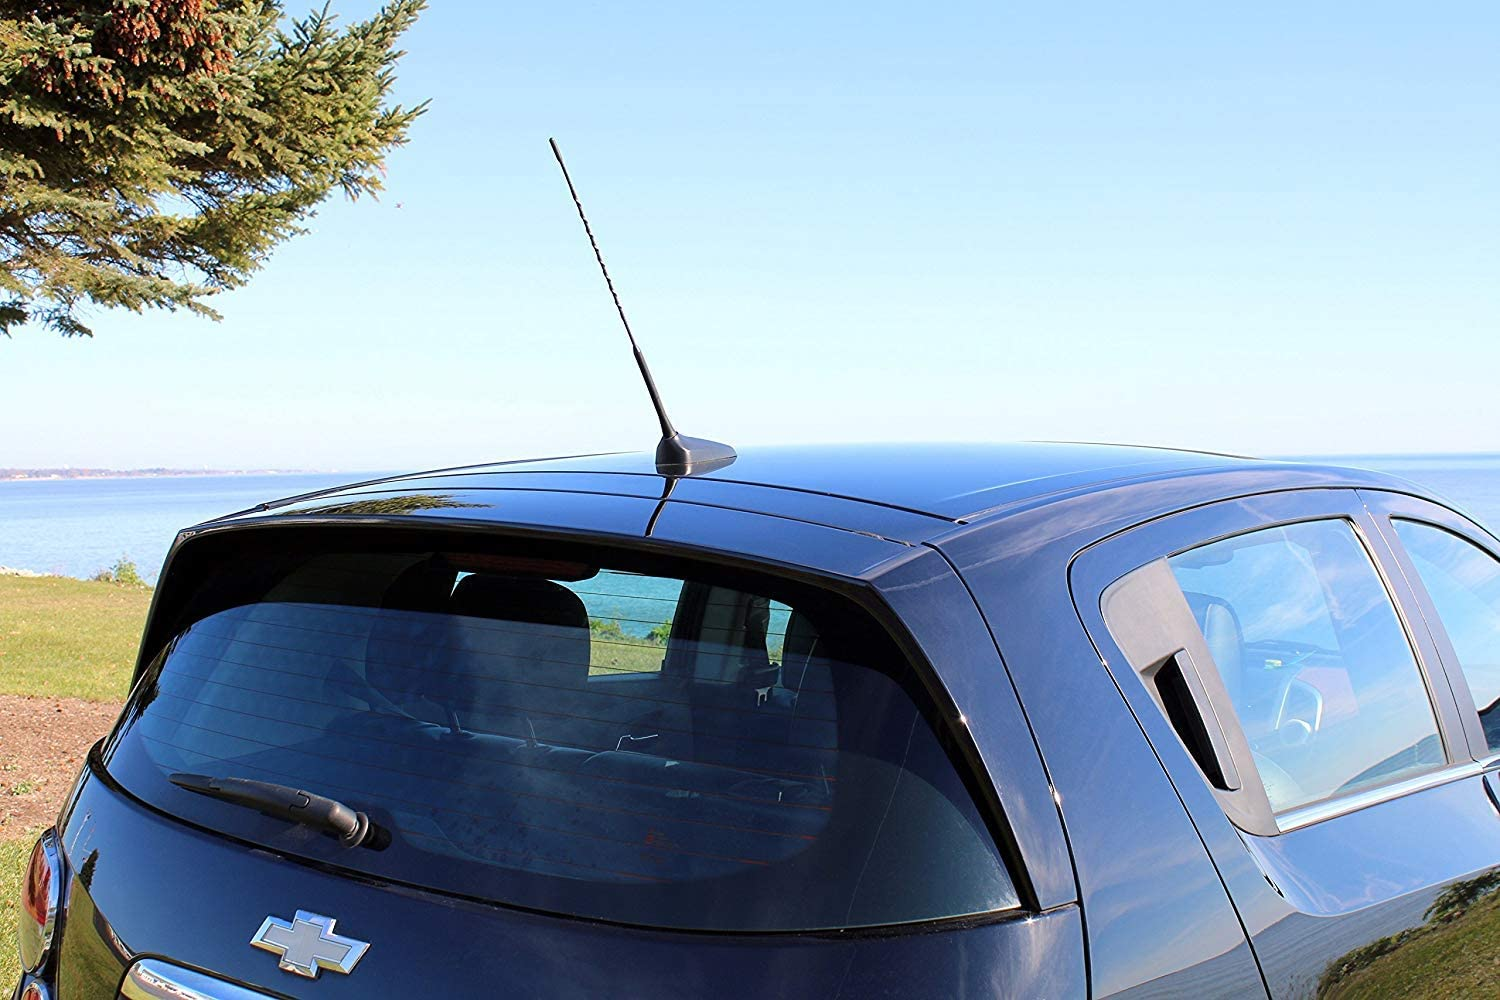 Cara 2.5 Radio Car Antenna Black Stubby Mini Short Antenna Mast AM FM Antenna Aerial for Honda Toyota RAV4 Nissan 350z Suzuki Aerio Swift Lexus IS300 RX3